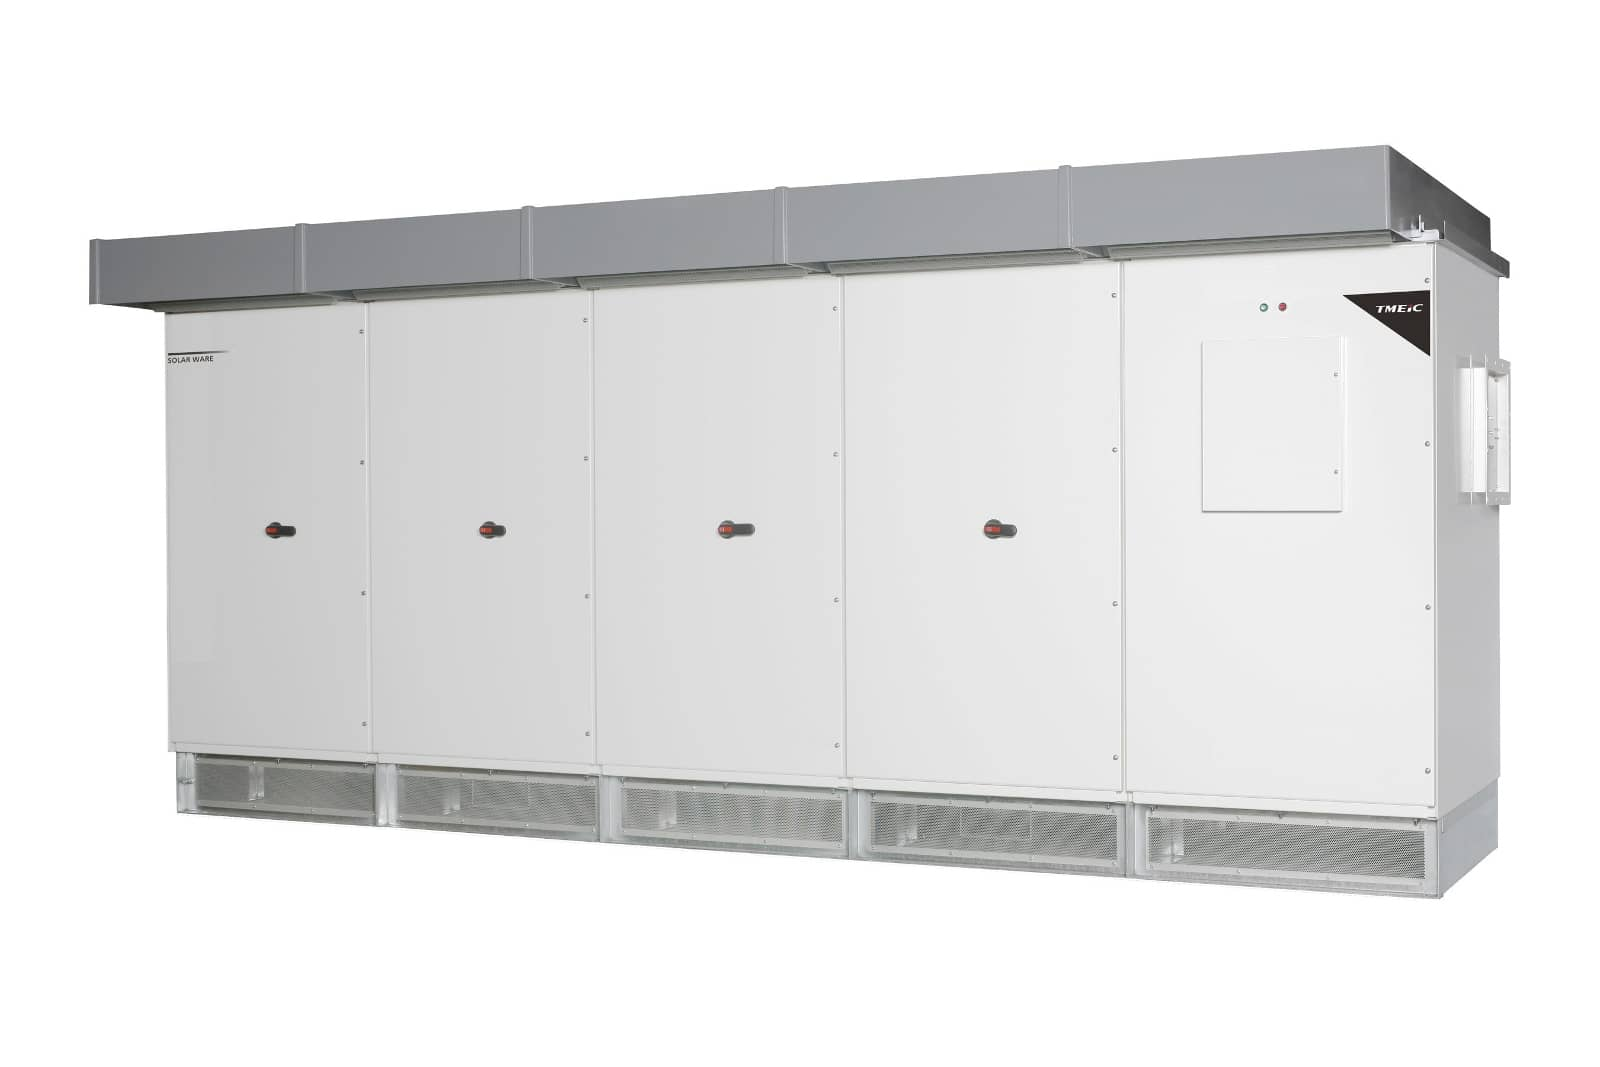 TMEIC TMEIC Supplying New 1,500 V Inverters For 30 MW Colo. Project